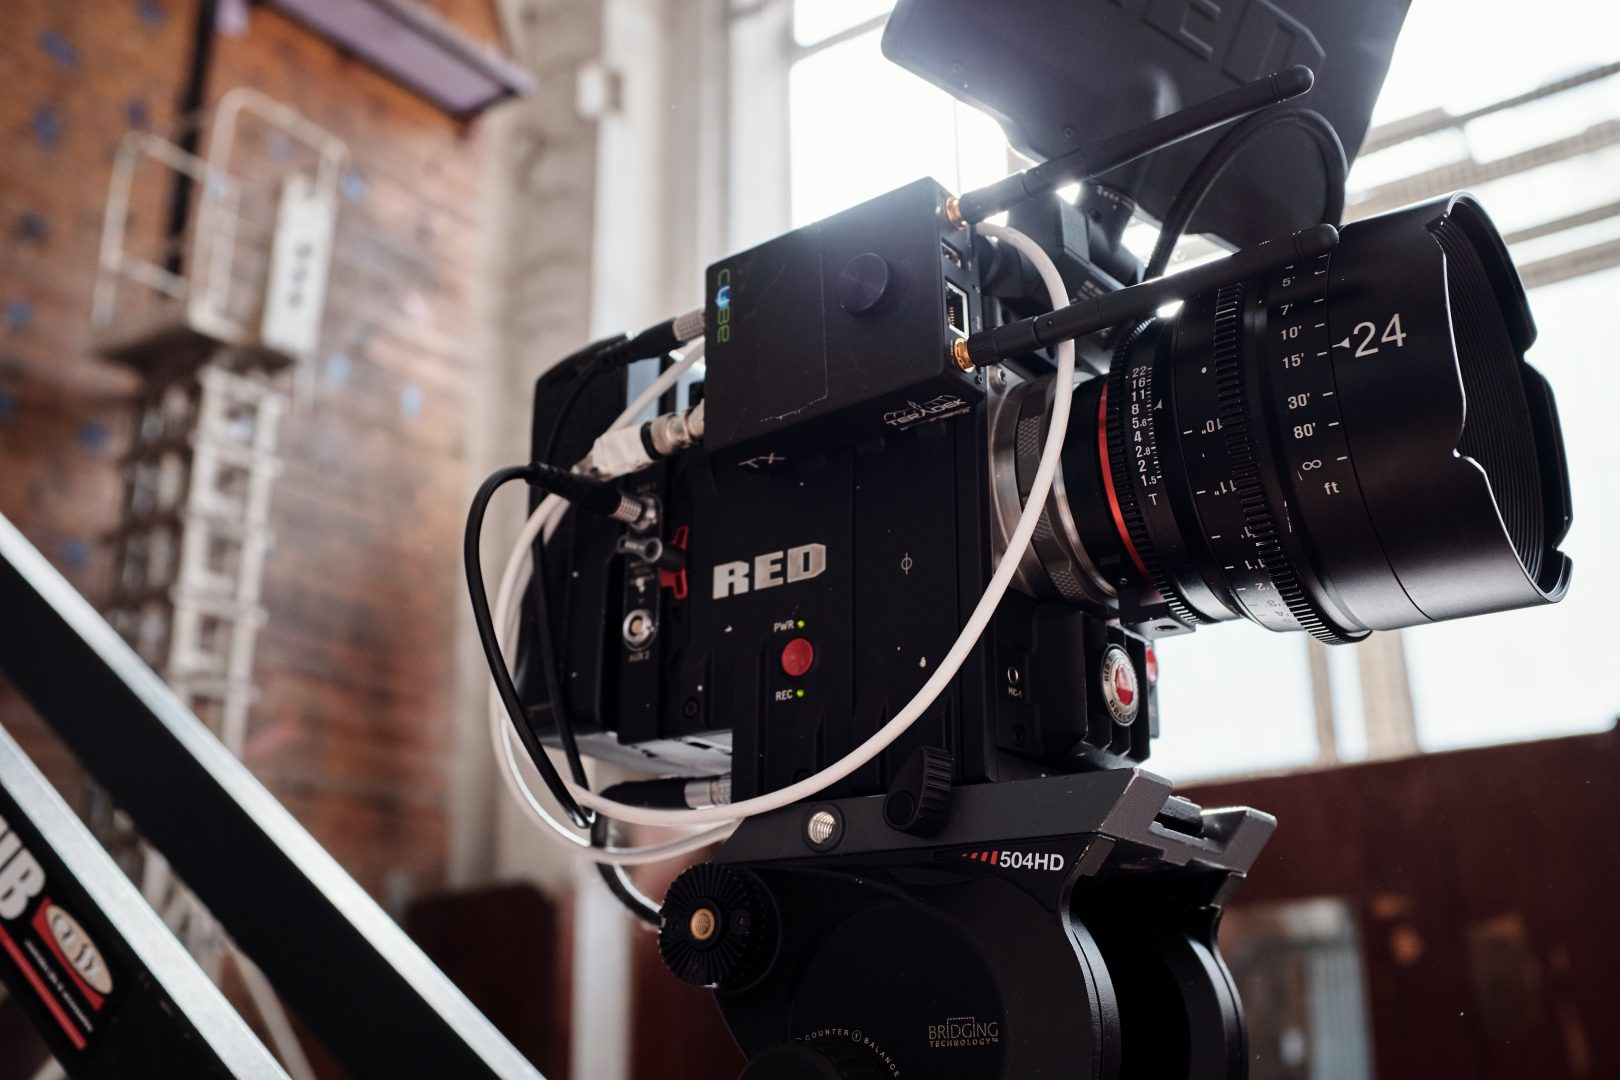 A Red camera and filmmaker's equipment